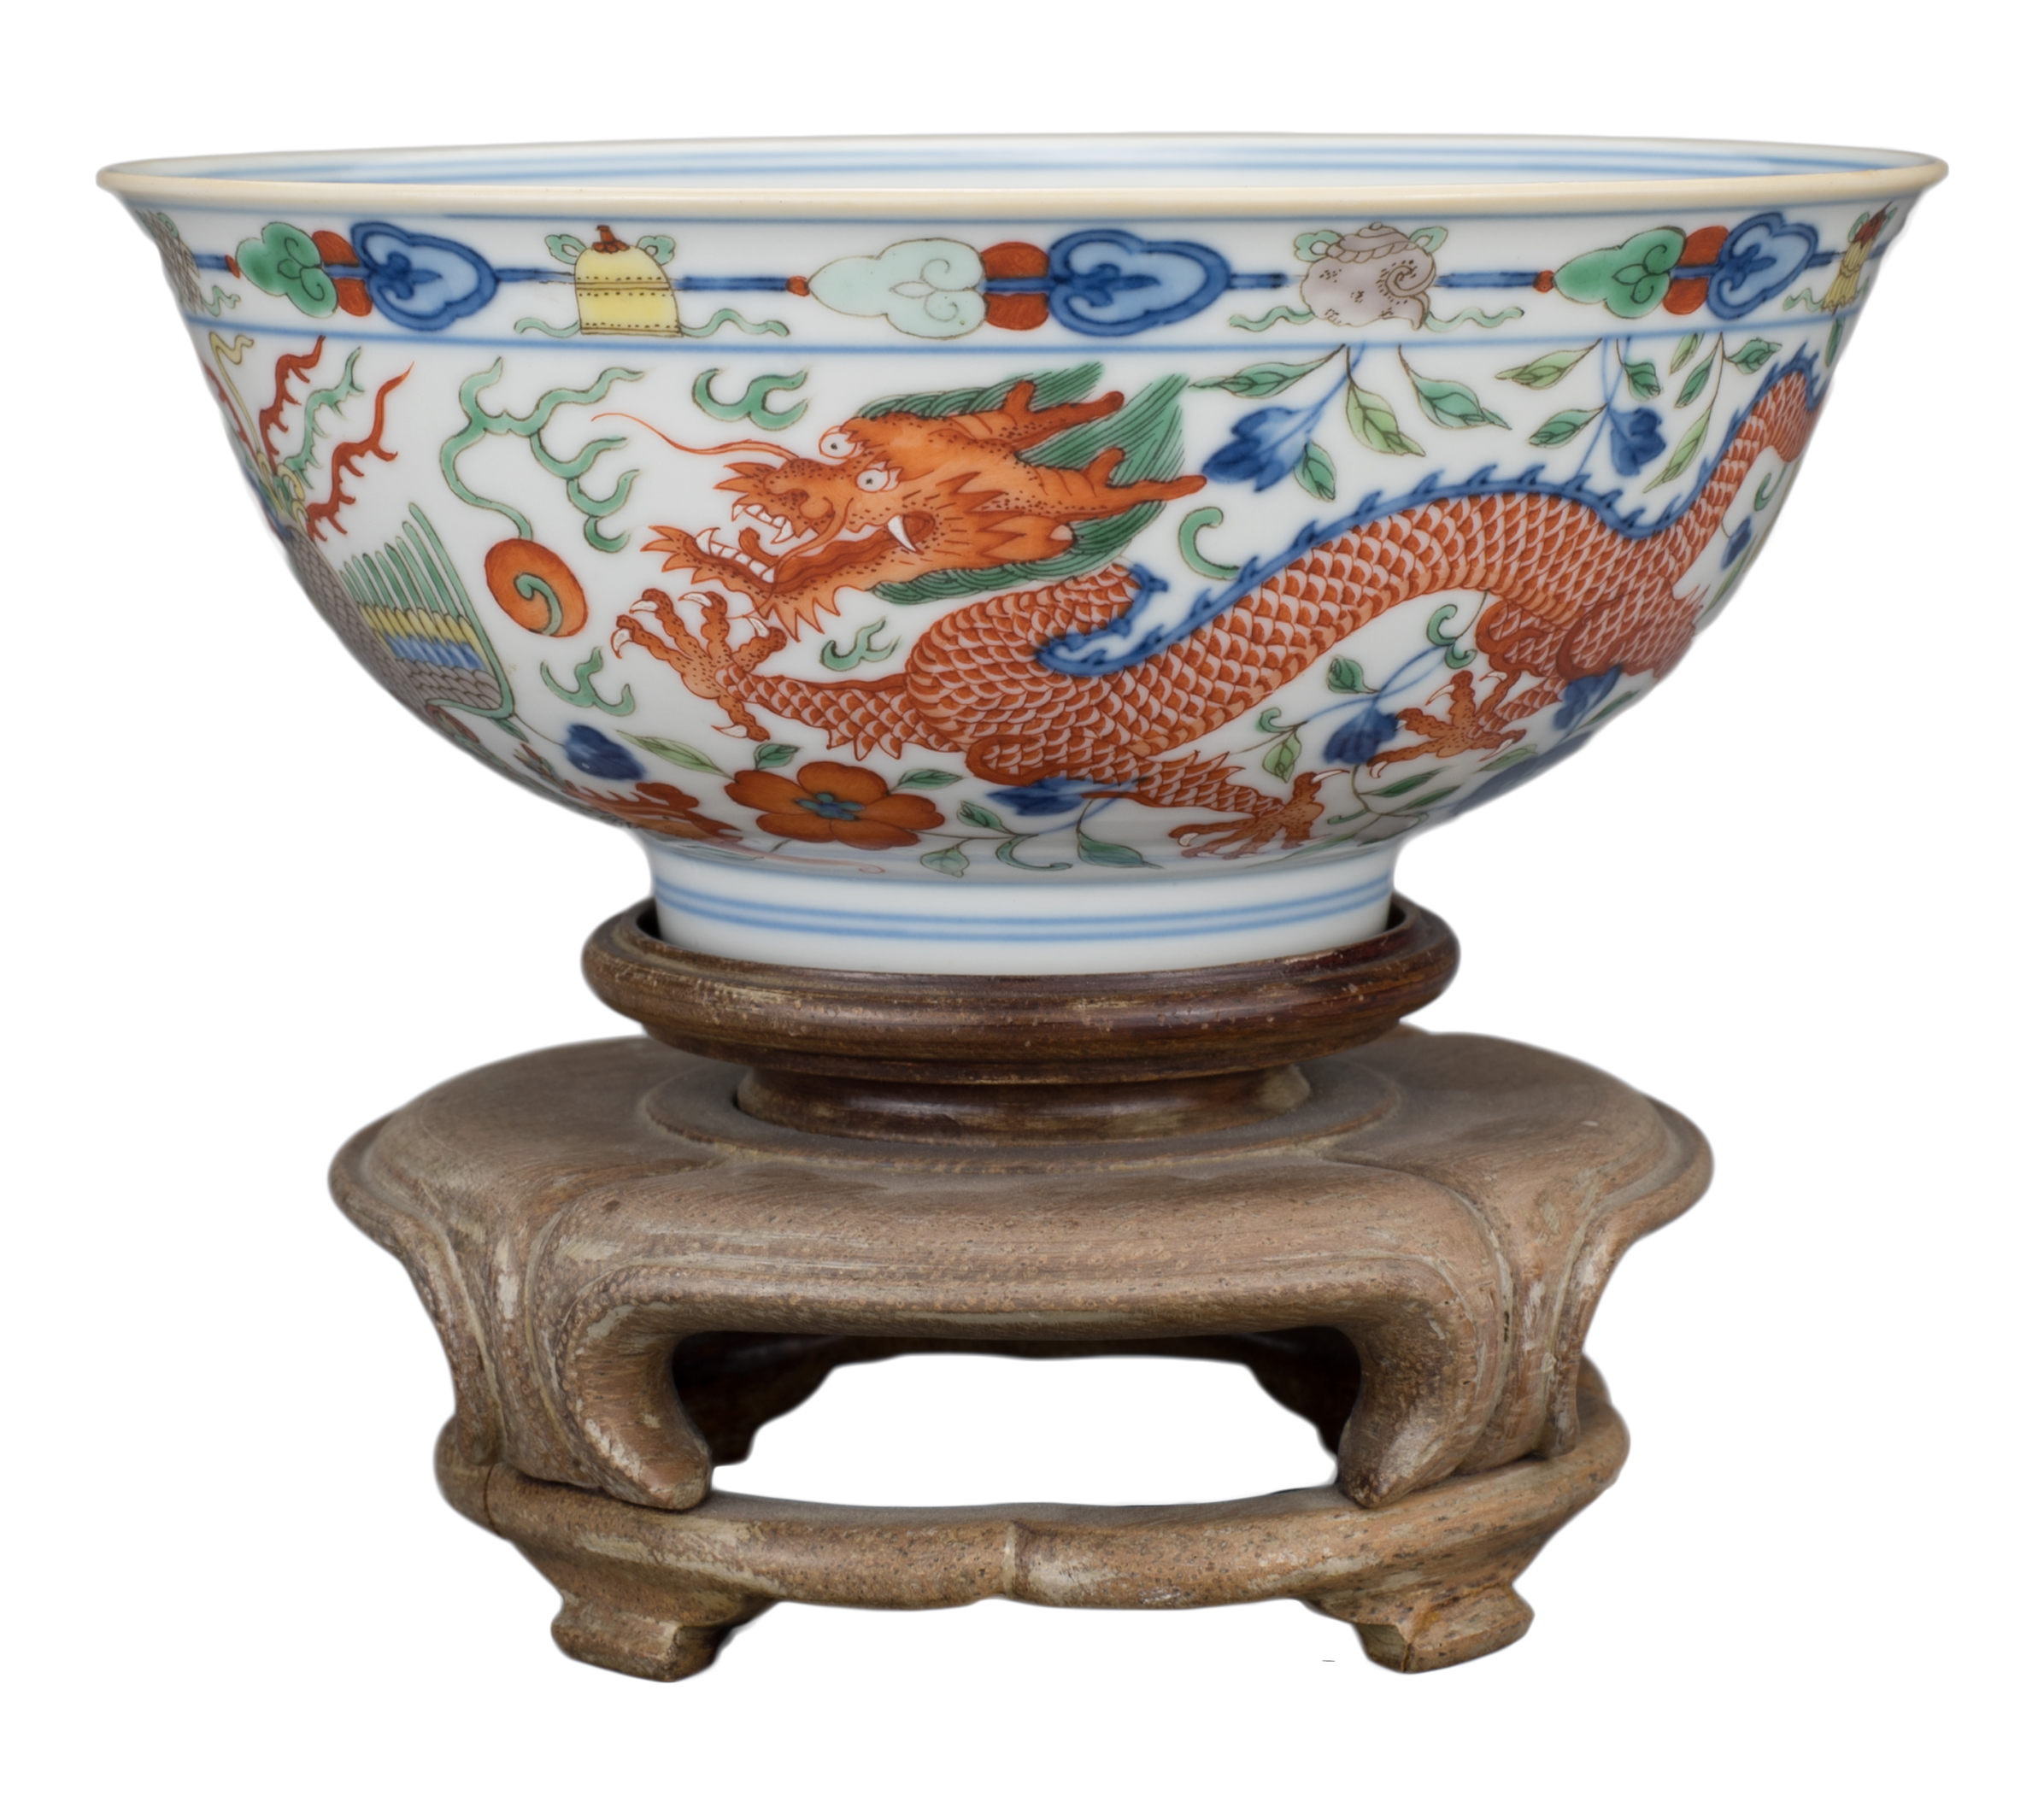 FINE CHINESE WUCAI 'DRAGON & PHOENIX' PORCELAIN BOWL, JIAQING MARK AND PERIOD, EARLY 19th CENTURY